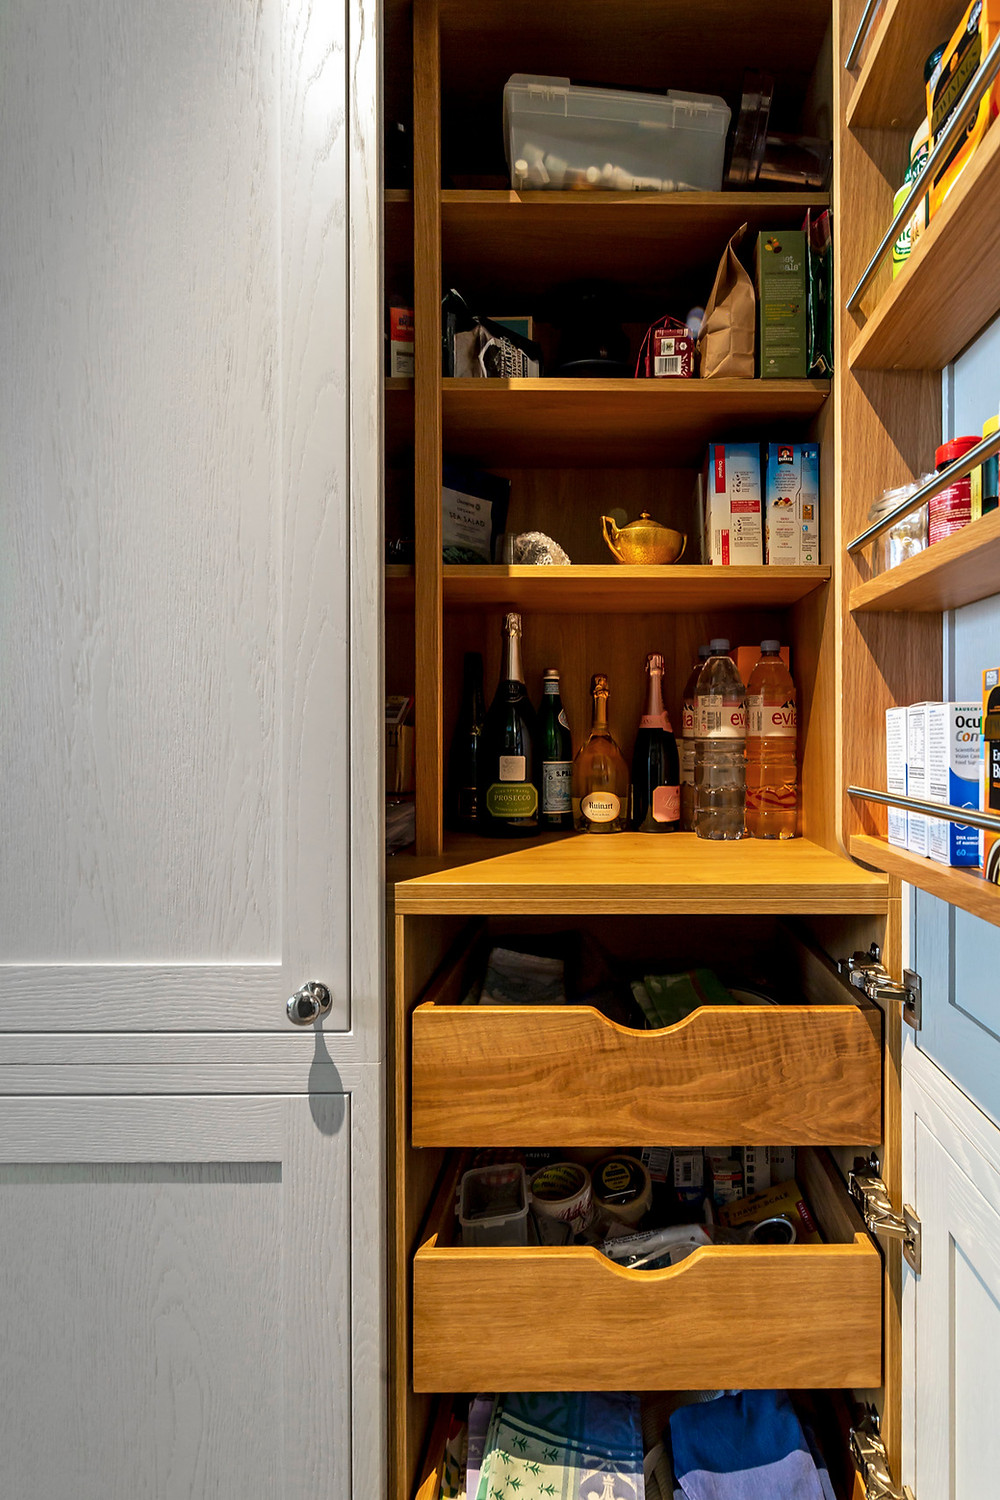 Pantry cupboard with wood internal shelving for dry goods and spices